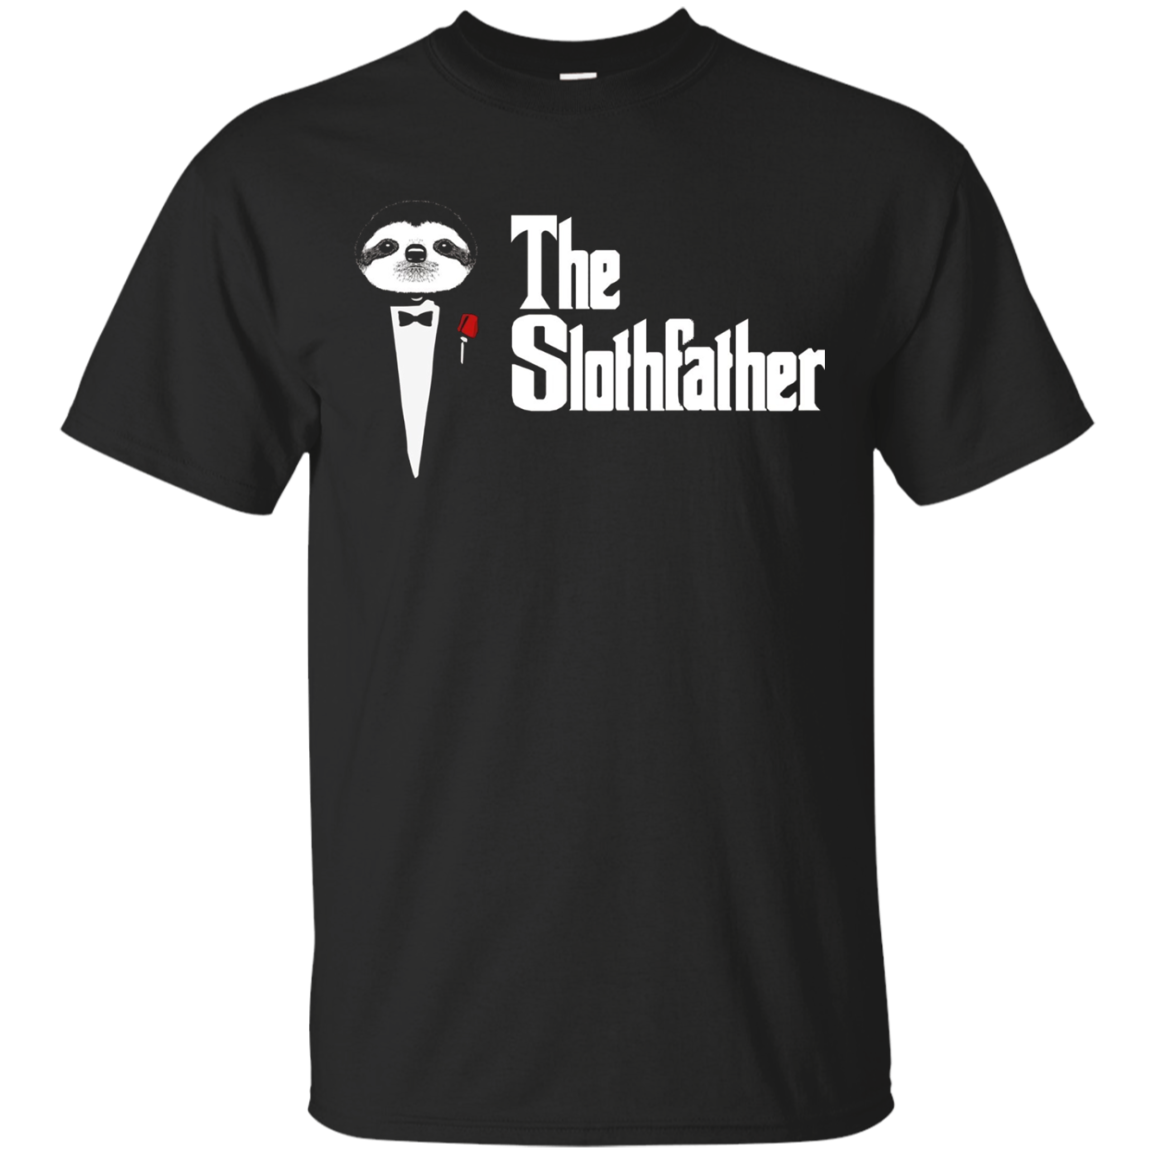 The Sloth Father T Shirt